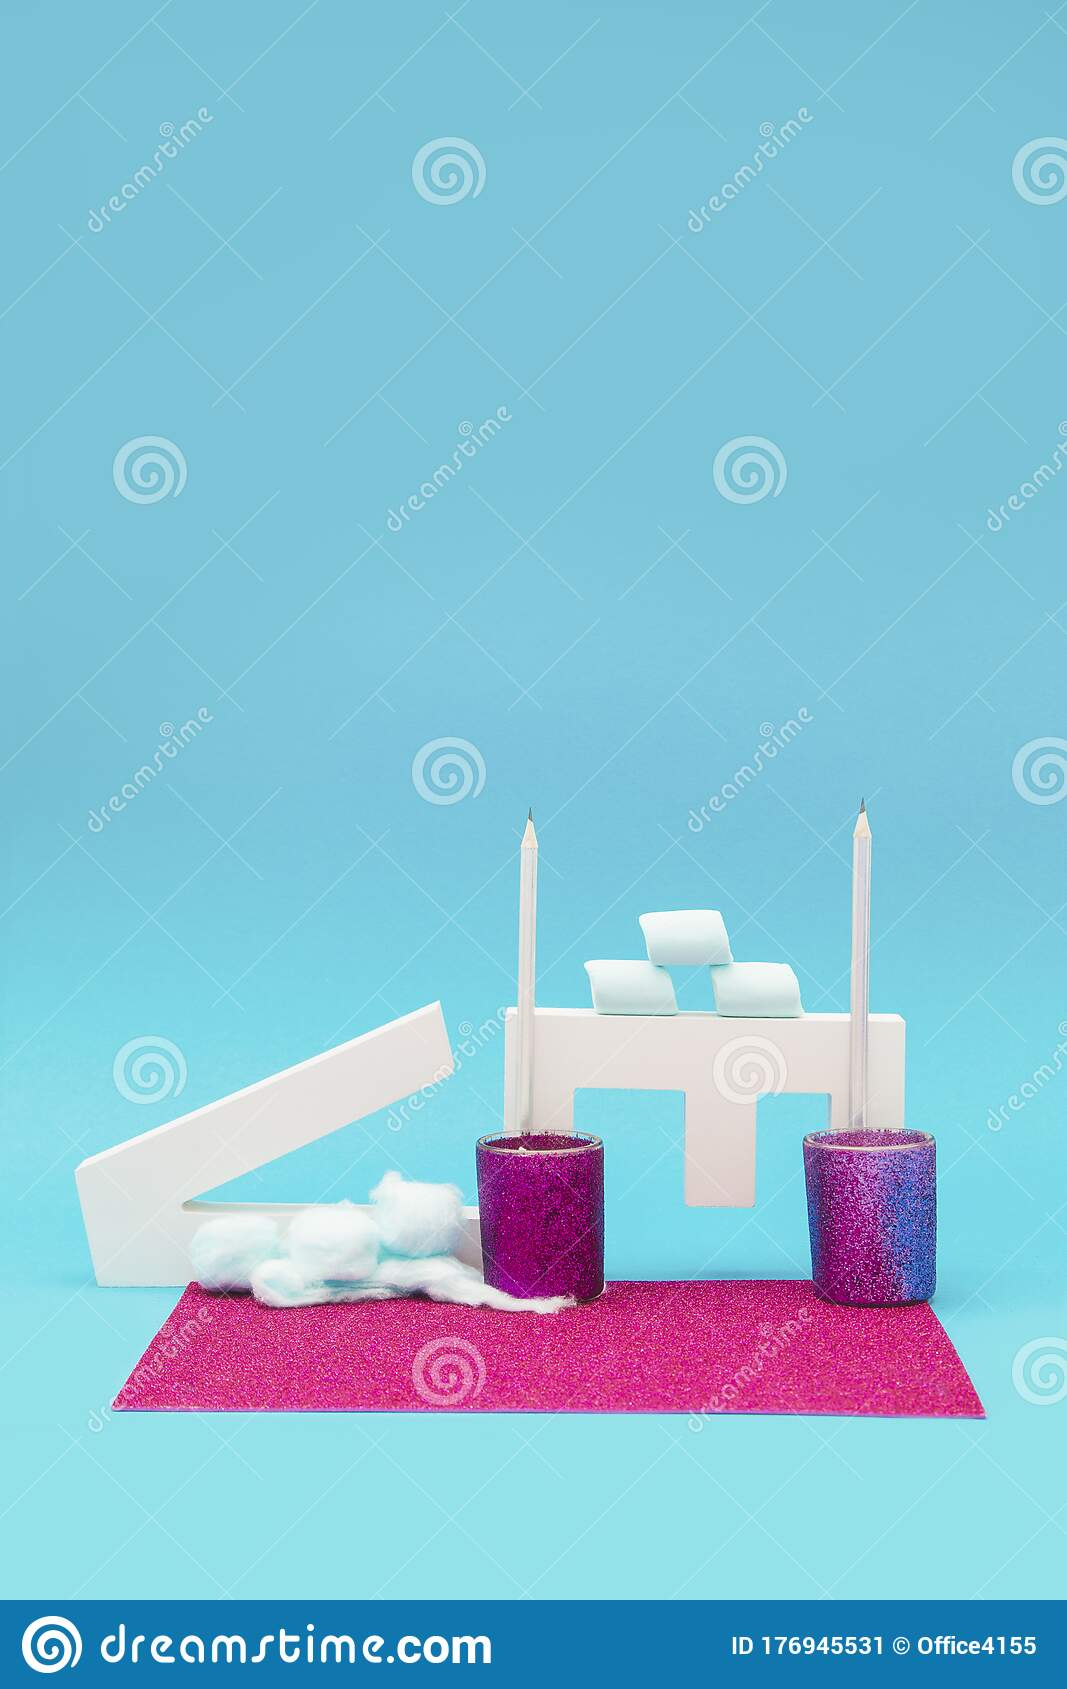 Letter Objects With Marshmallows And Candle Holders On A Blue And Purple Background Stock Image Image Of Graphic Creative 176945531